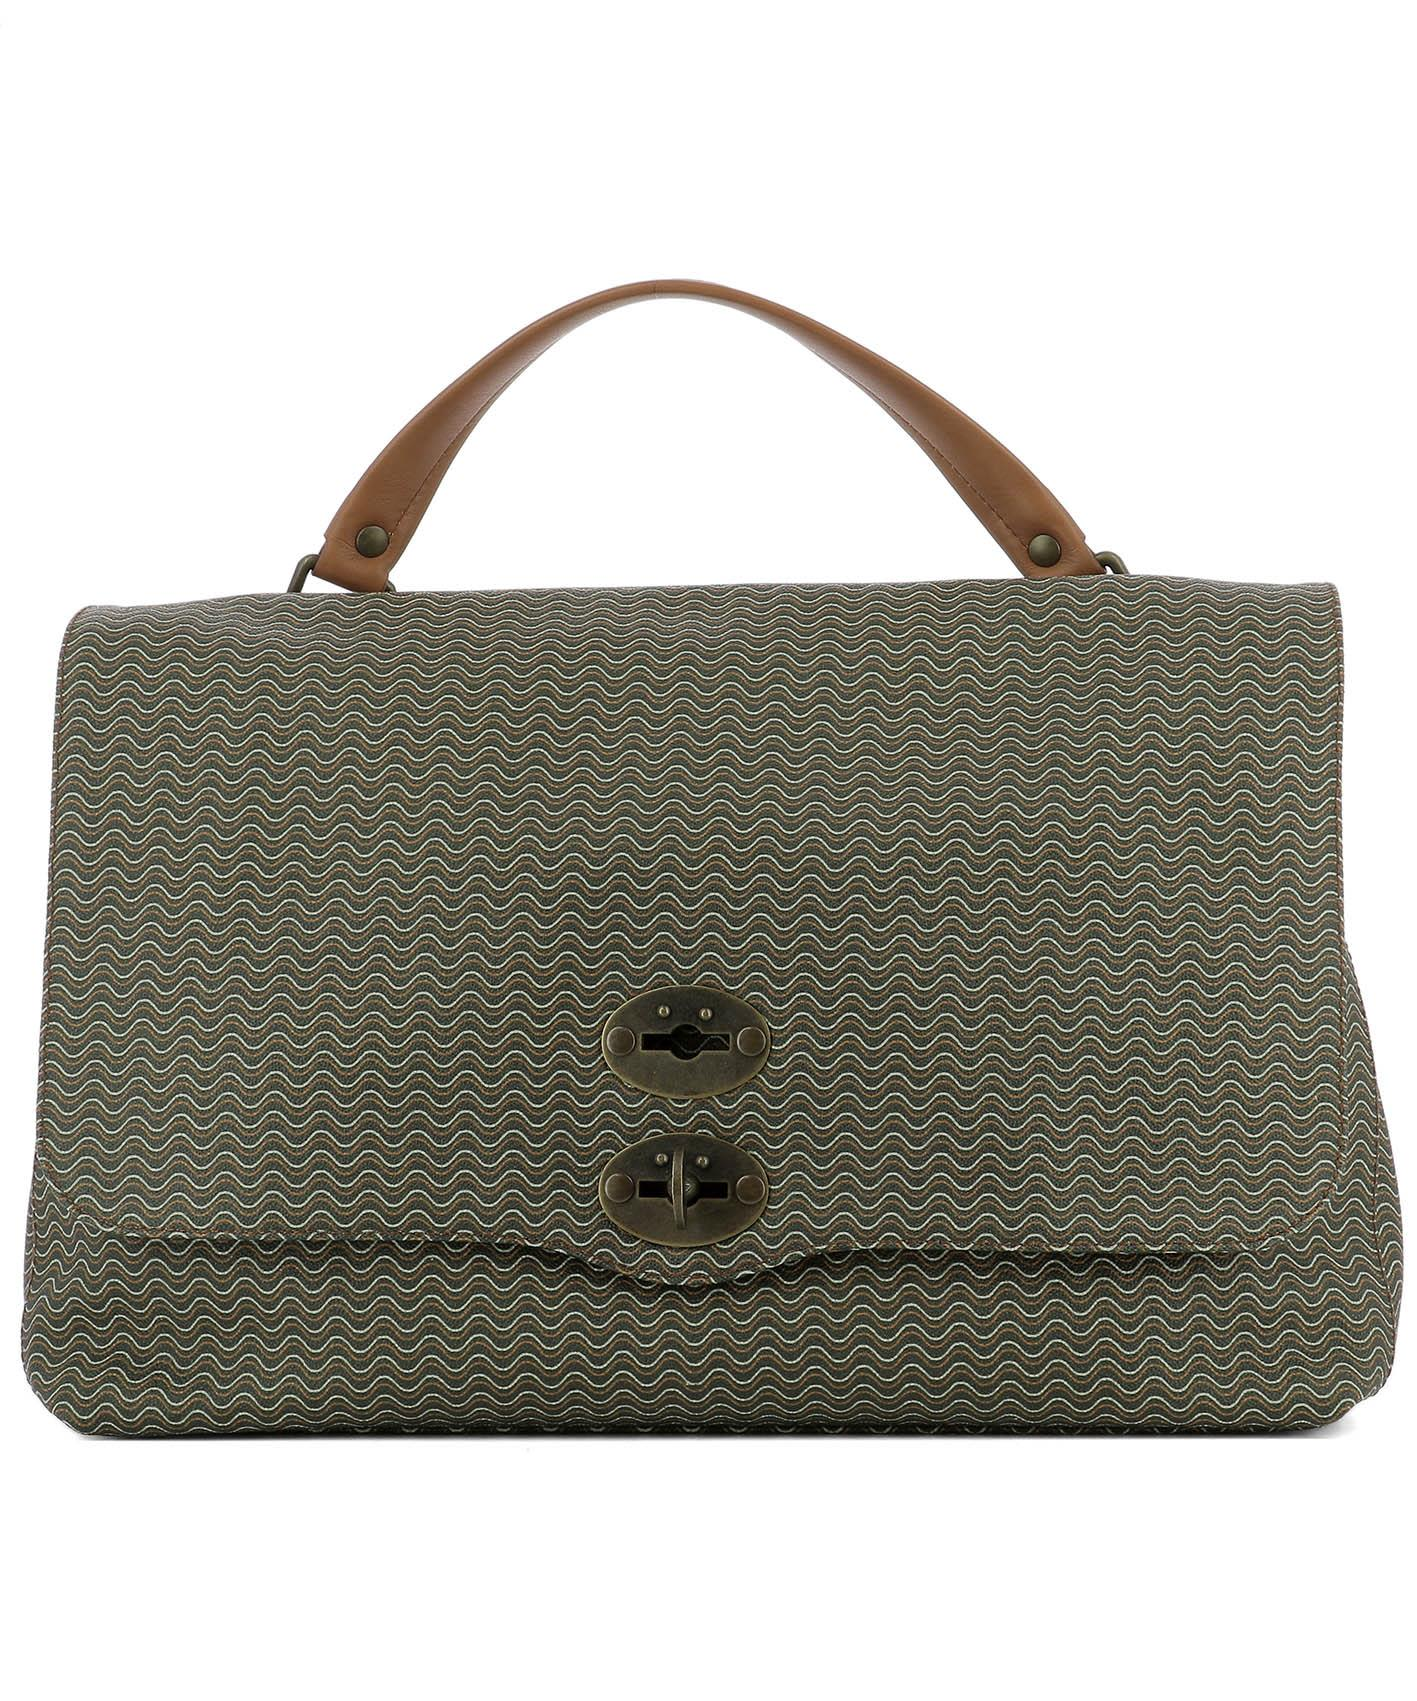 Green Leather La Postina L Handle Bag